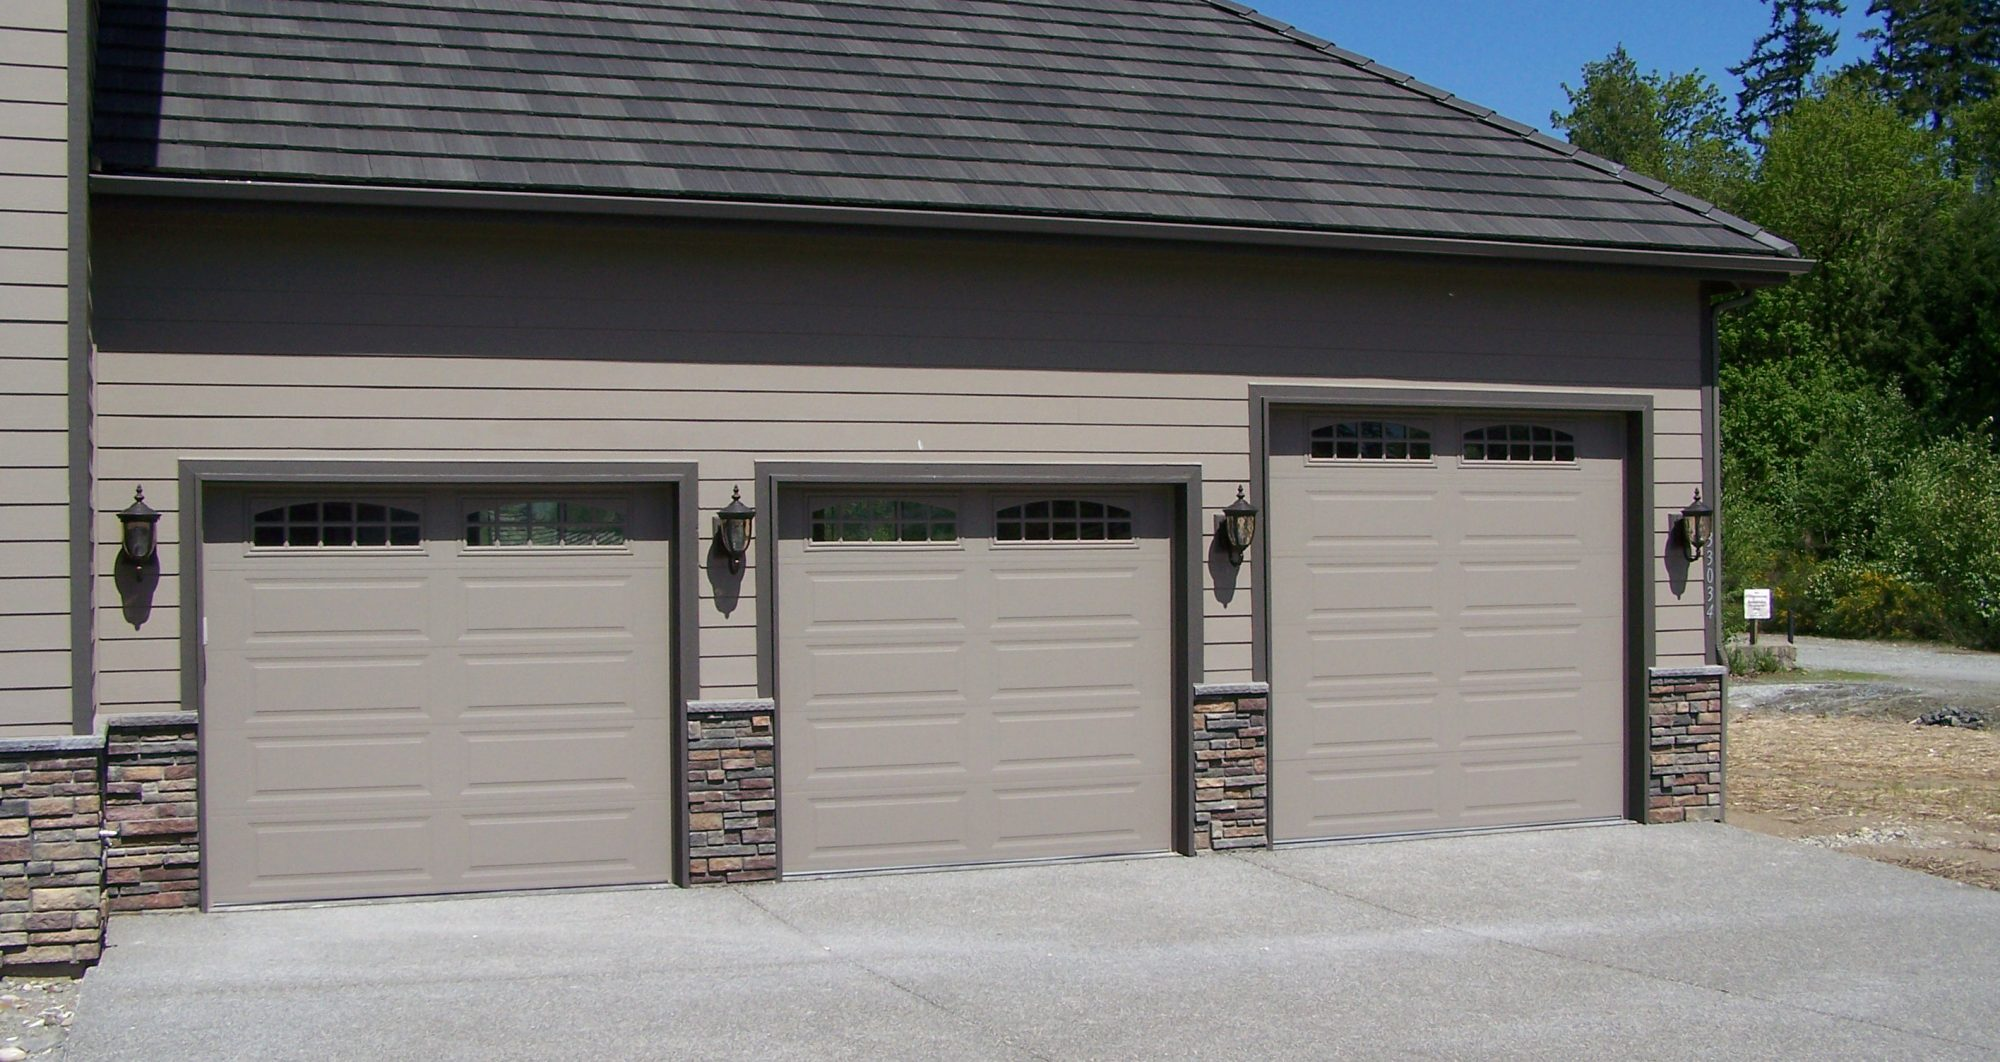 door and house plans boat economical two front more car storage kira projectplans rv includes garage or main plan